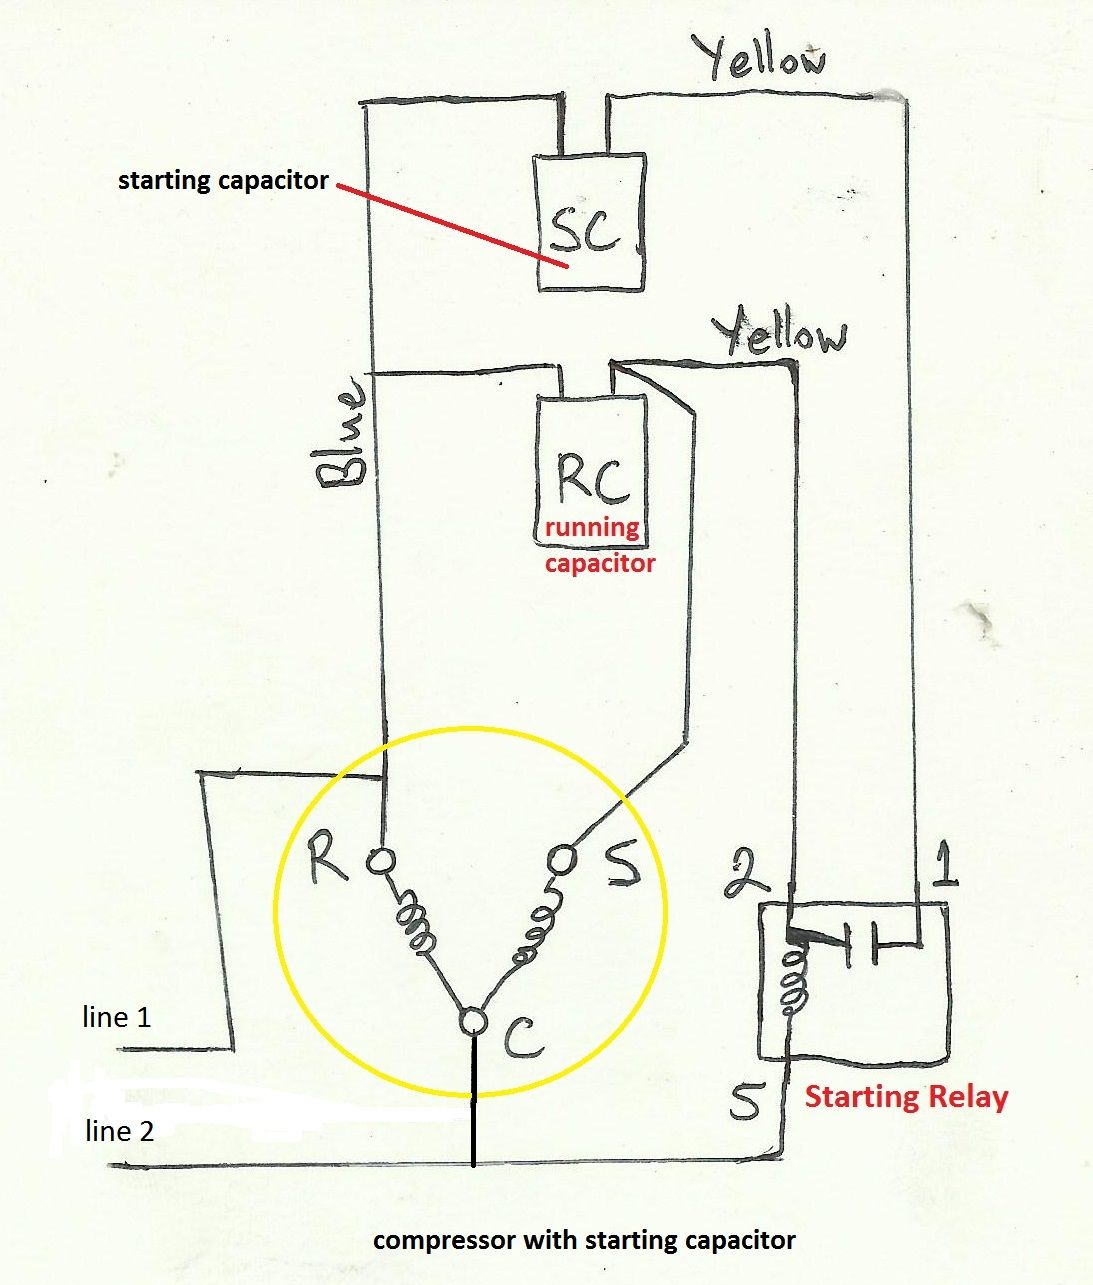 Air Compressor Capacitor Wiring Diagram Before You Call A Ac Repair 1996 Volvo 850 Electric Cooling Fan System Schematic Car Pictures Man Visit My Blog For Some Tips On How To Save Thousands In Repairs